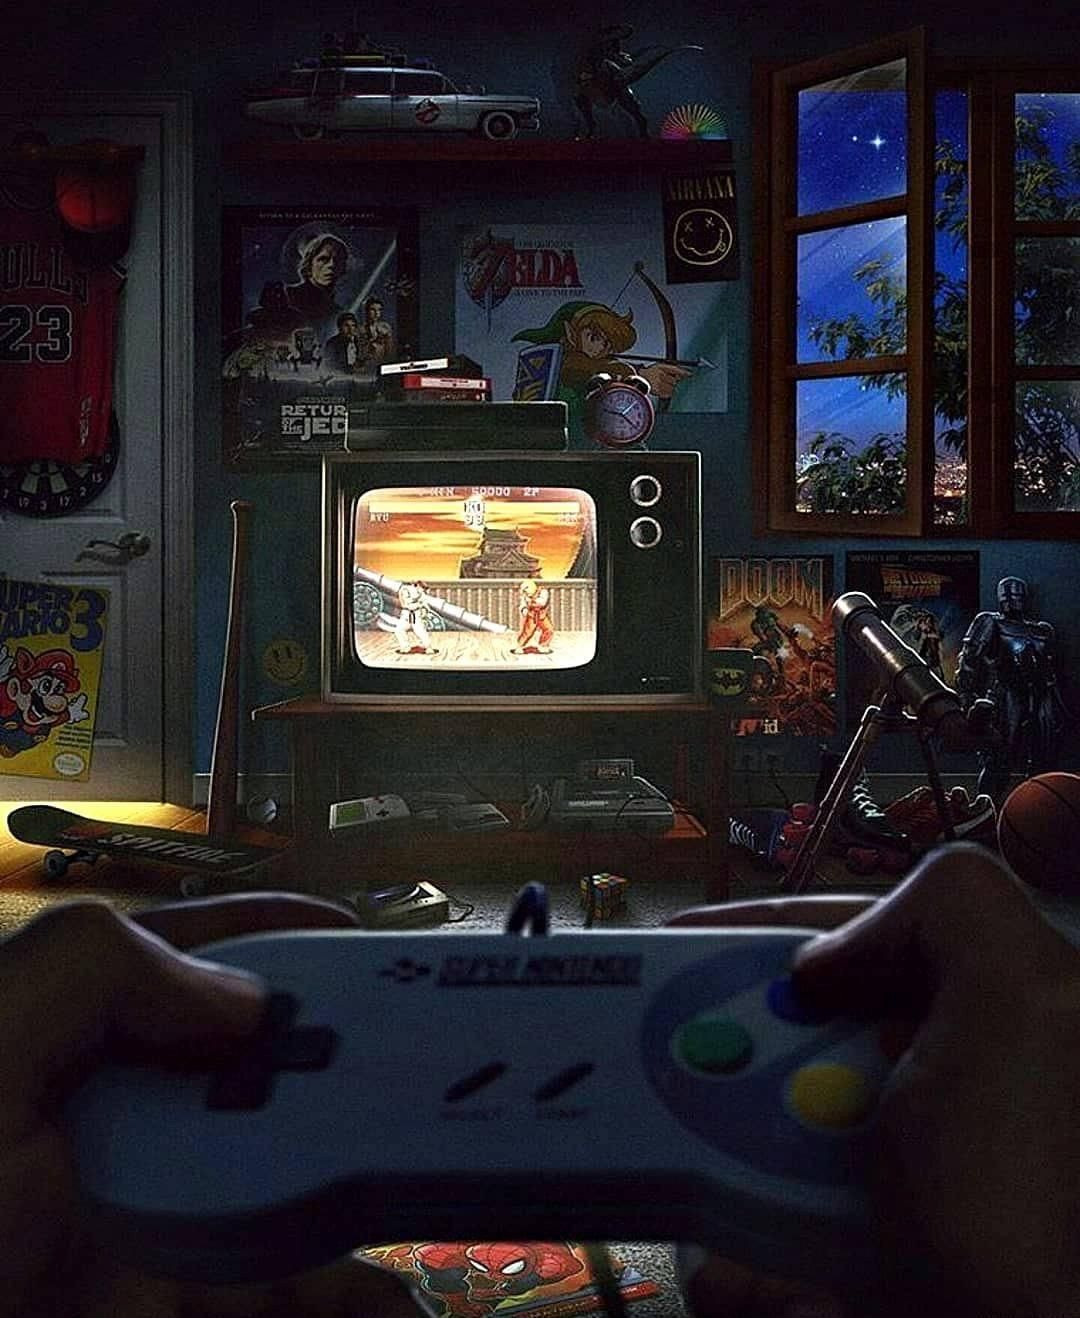 When Times Were Simpler Gaming Retro Gaming Art Gaming Wallpapers Vintage Video Games